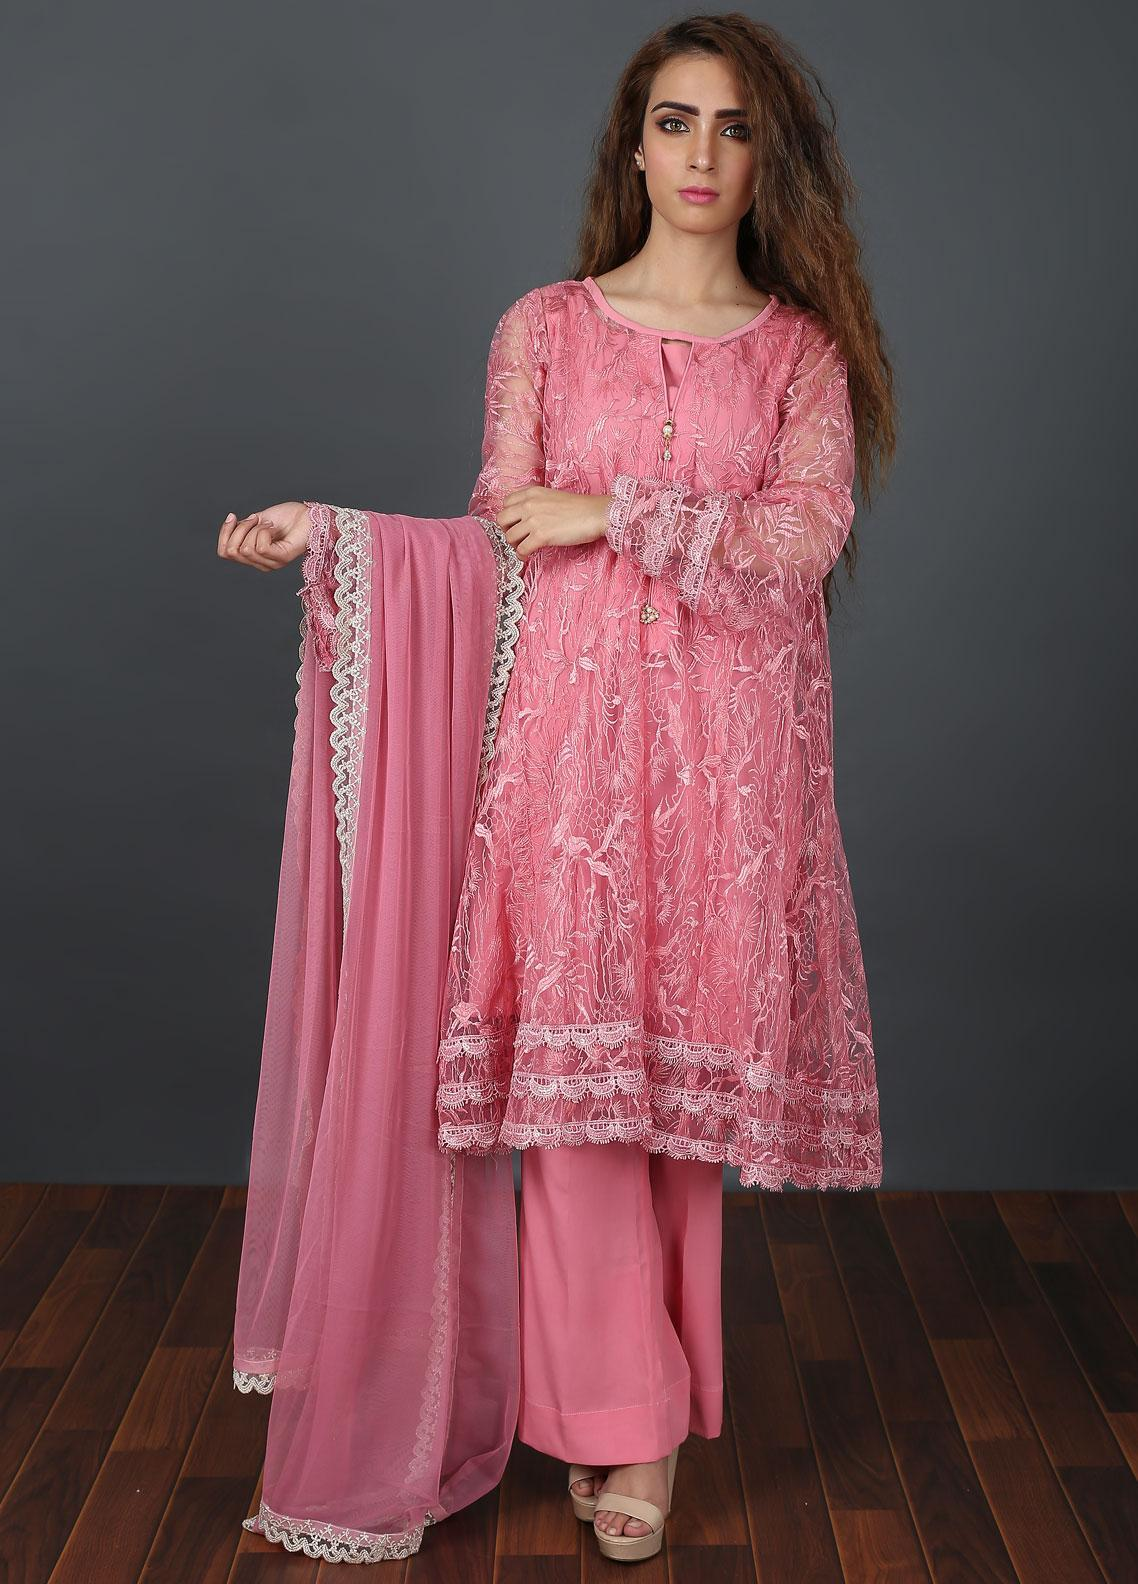 Zoonaj Embroidered Zari Net Stitched 3 Piece Suit Light Pink ZFOD 99